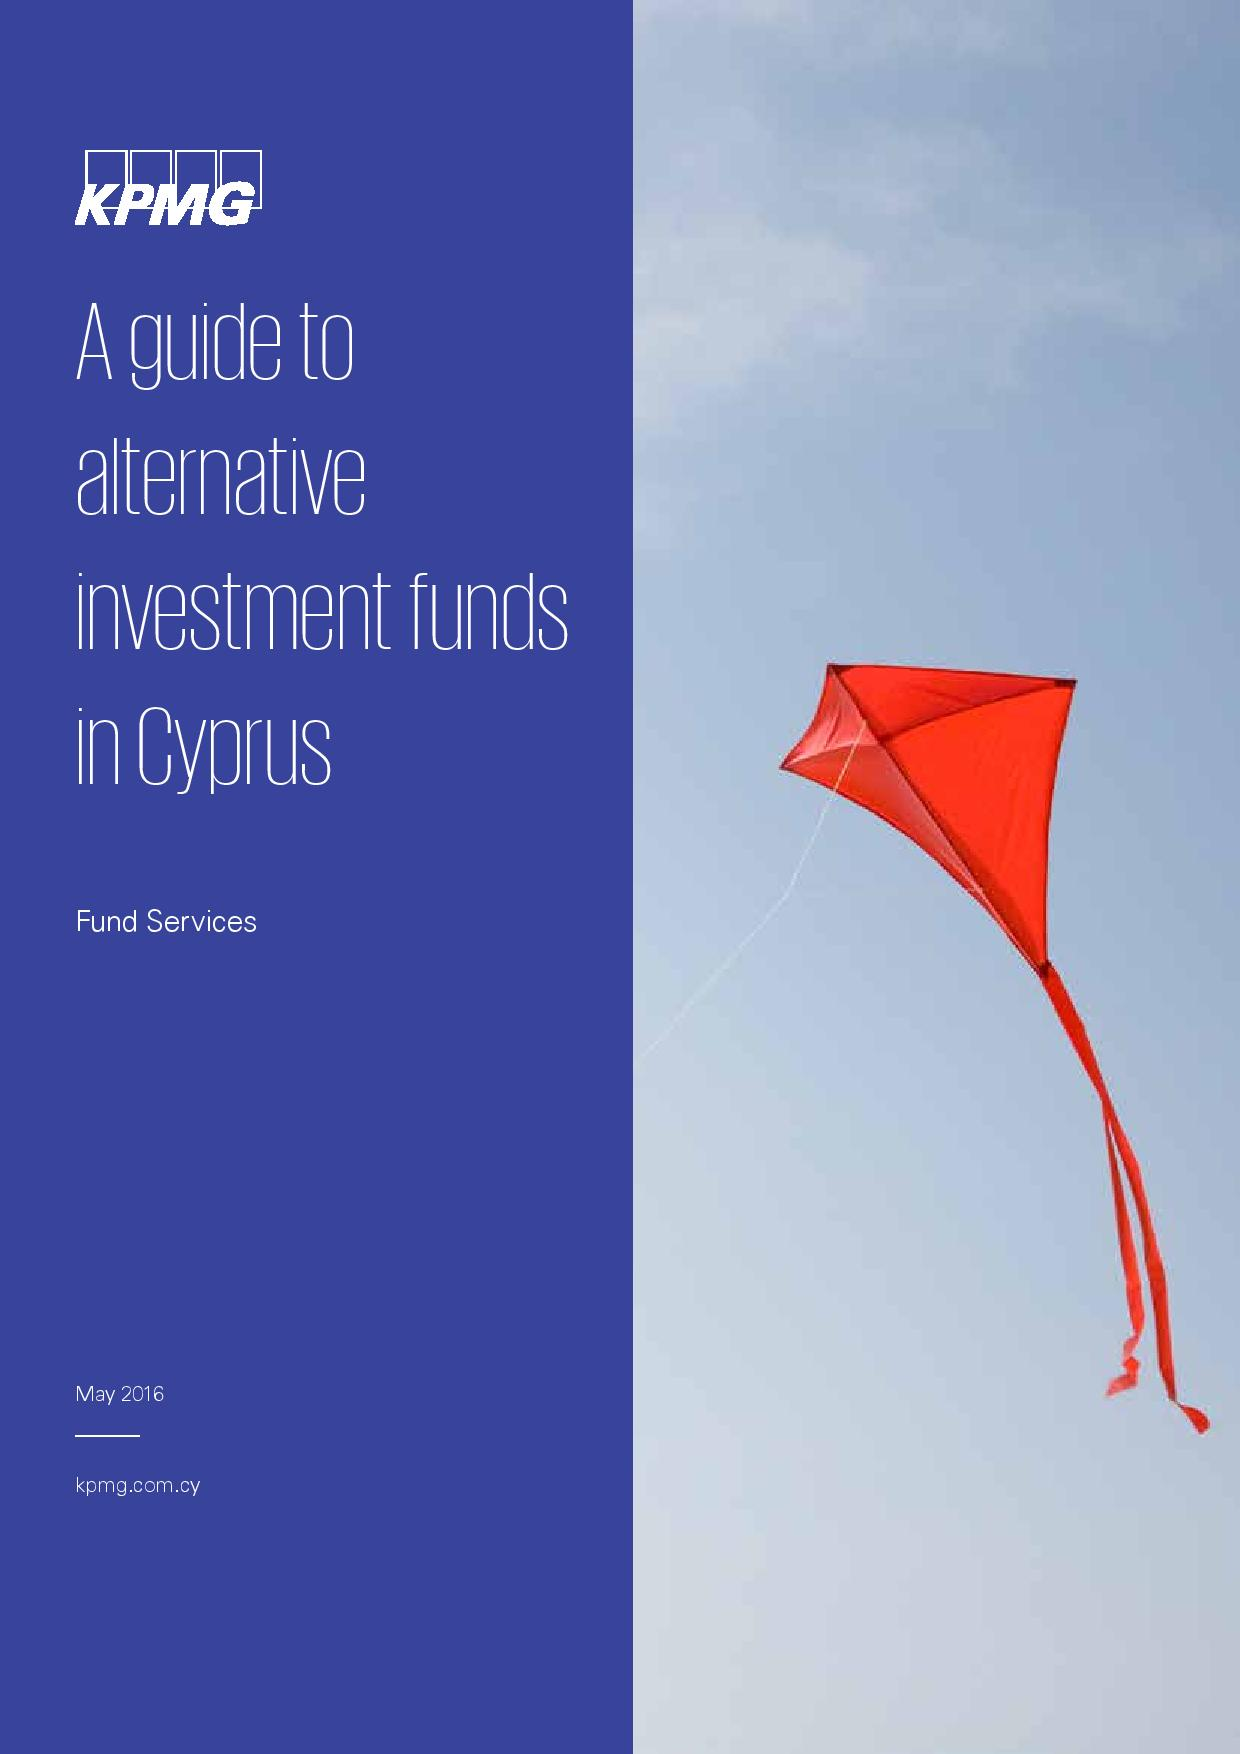 KPMG: A guide to alternative investment funds in Cyprus